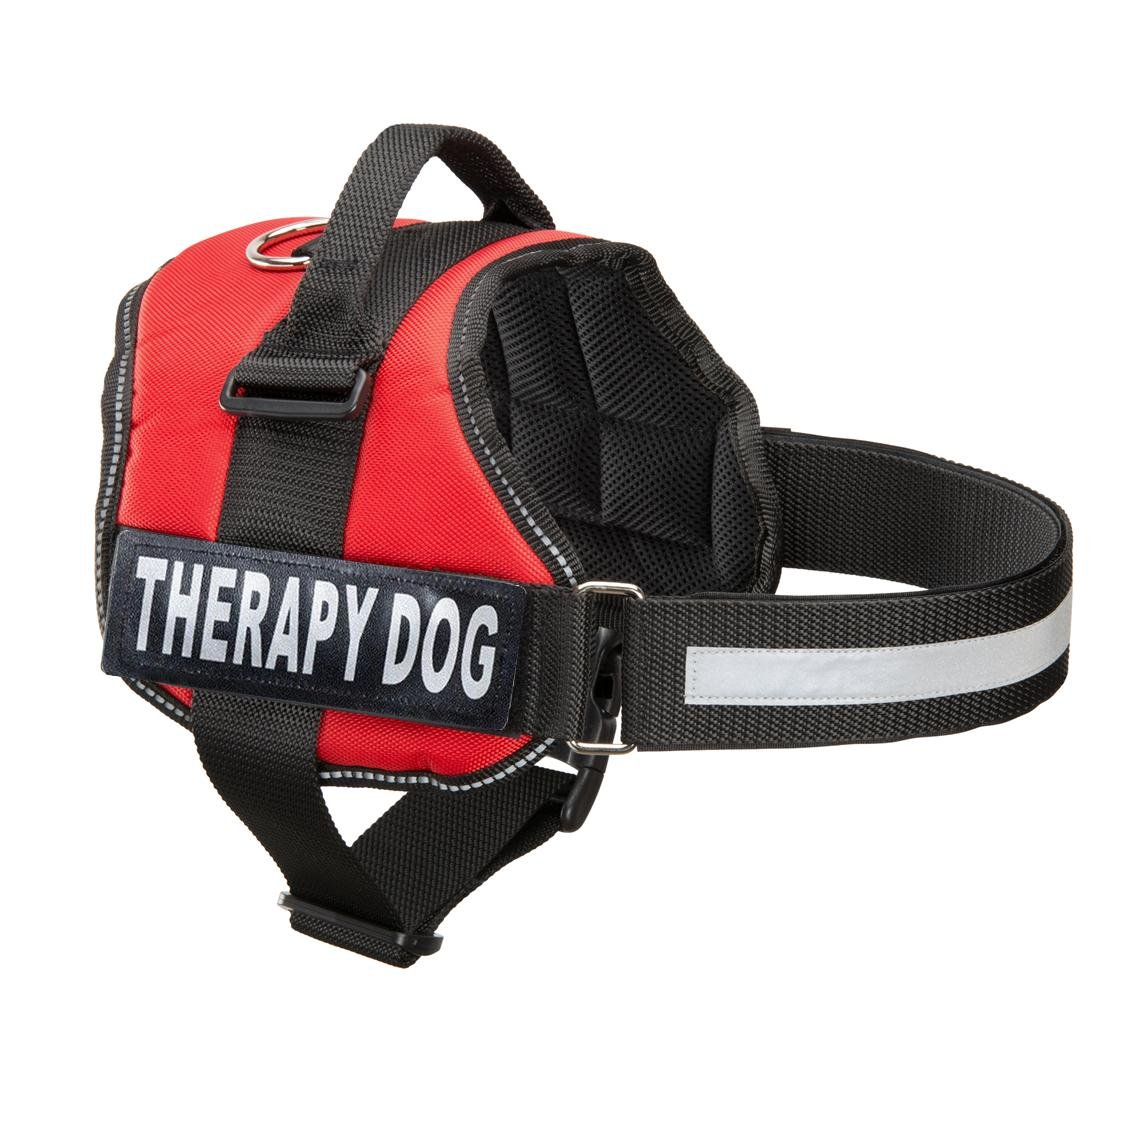 Industrial Puppy Therapy Dog Vest Harness, Training Dog Vest with 2 Reflective THERAPY DOG Hook and Loop Patches -Attach Animal Collar Tag, Patch, or Small ID Card for Dogs